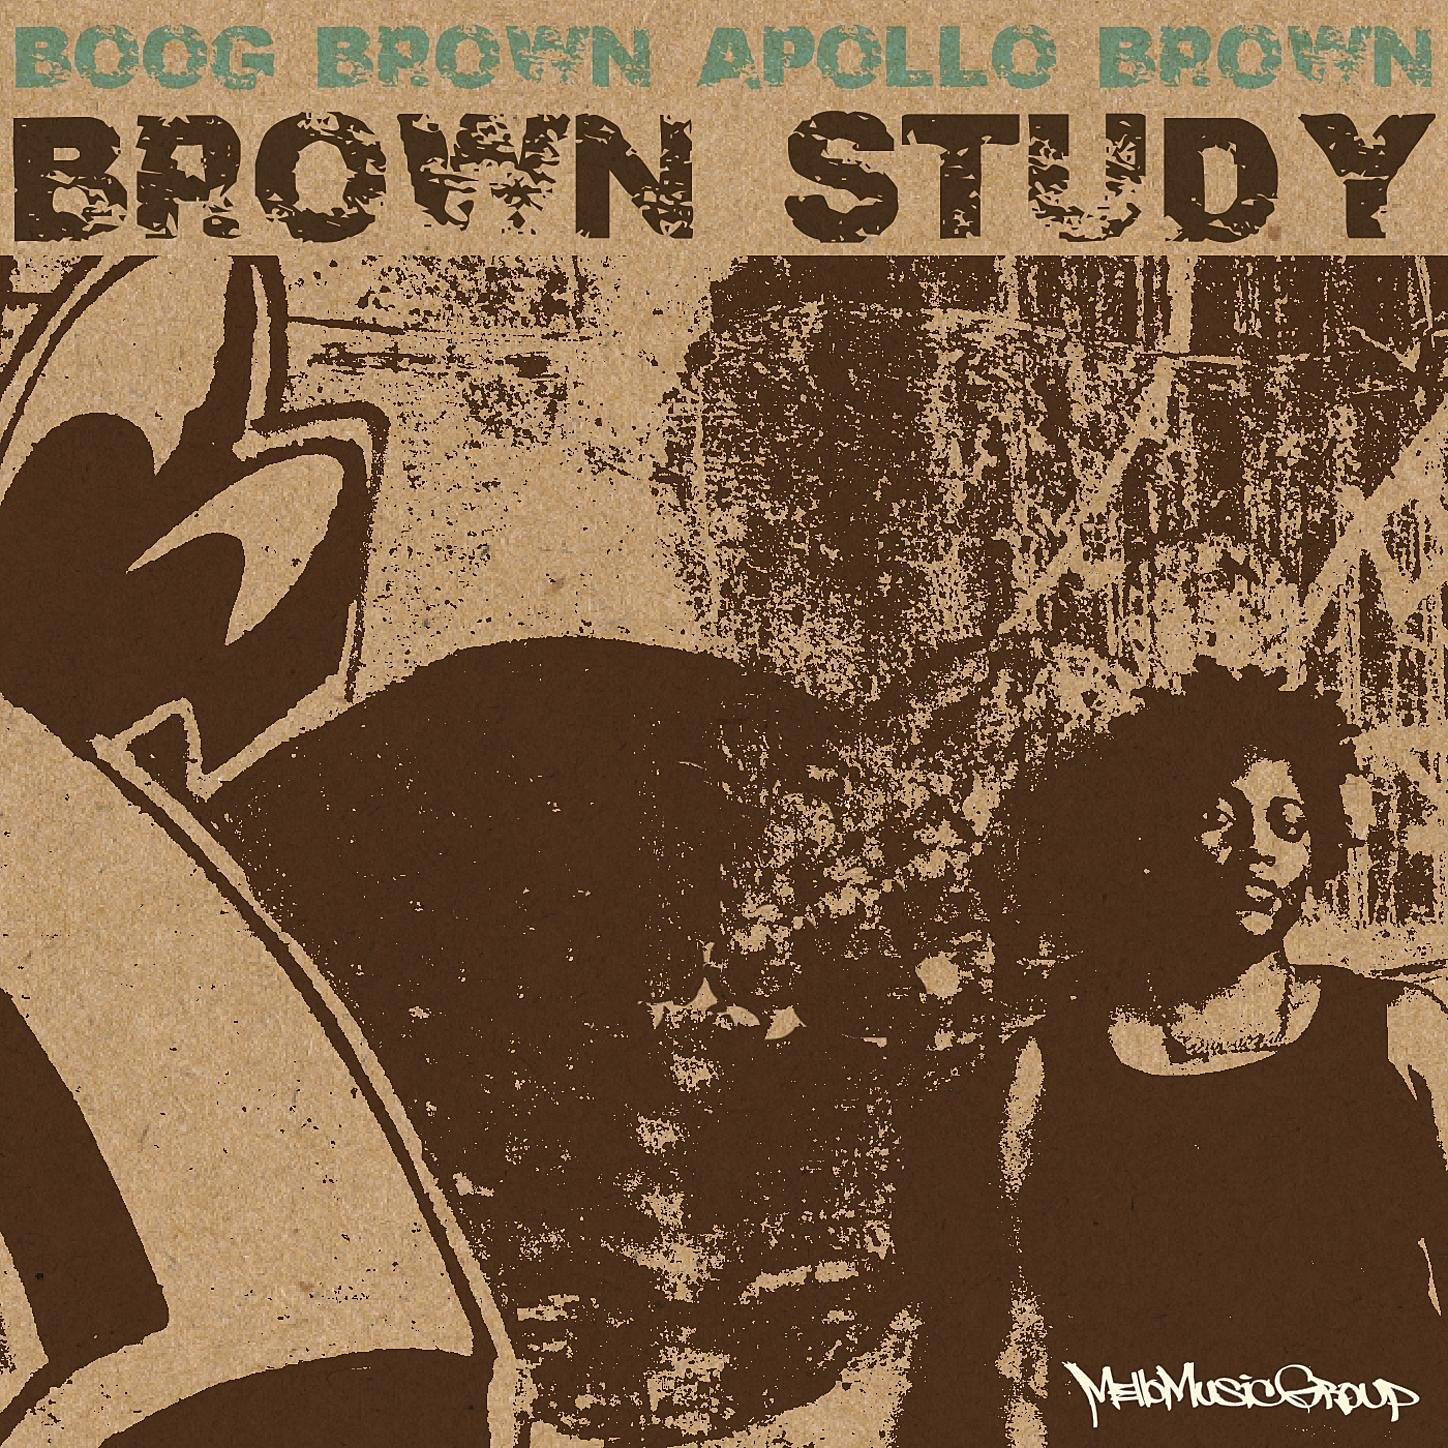 Boog Brown & Apollo Brown - Brown Study (2010) [FLAC] Download